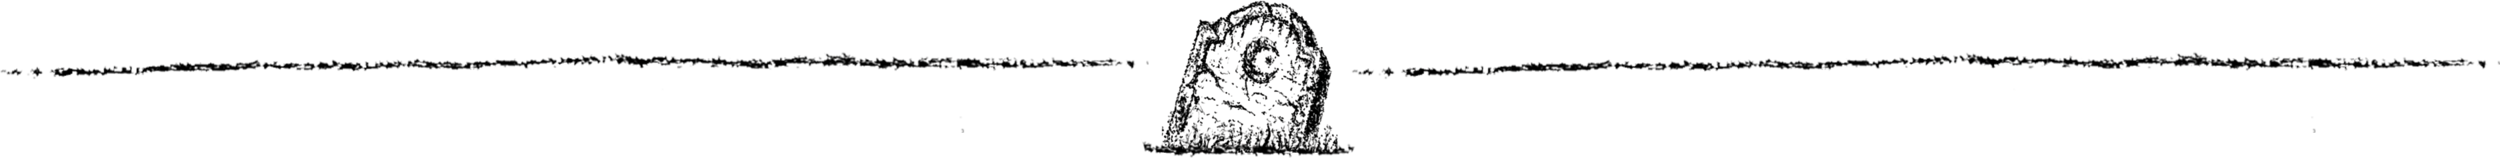 TOMB_DIV.png